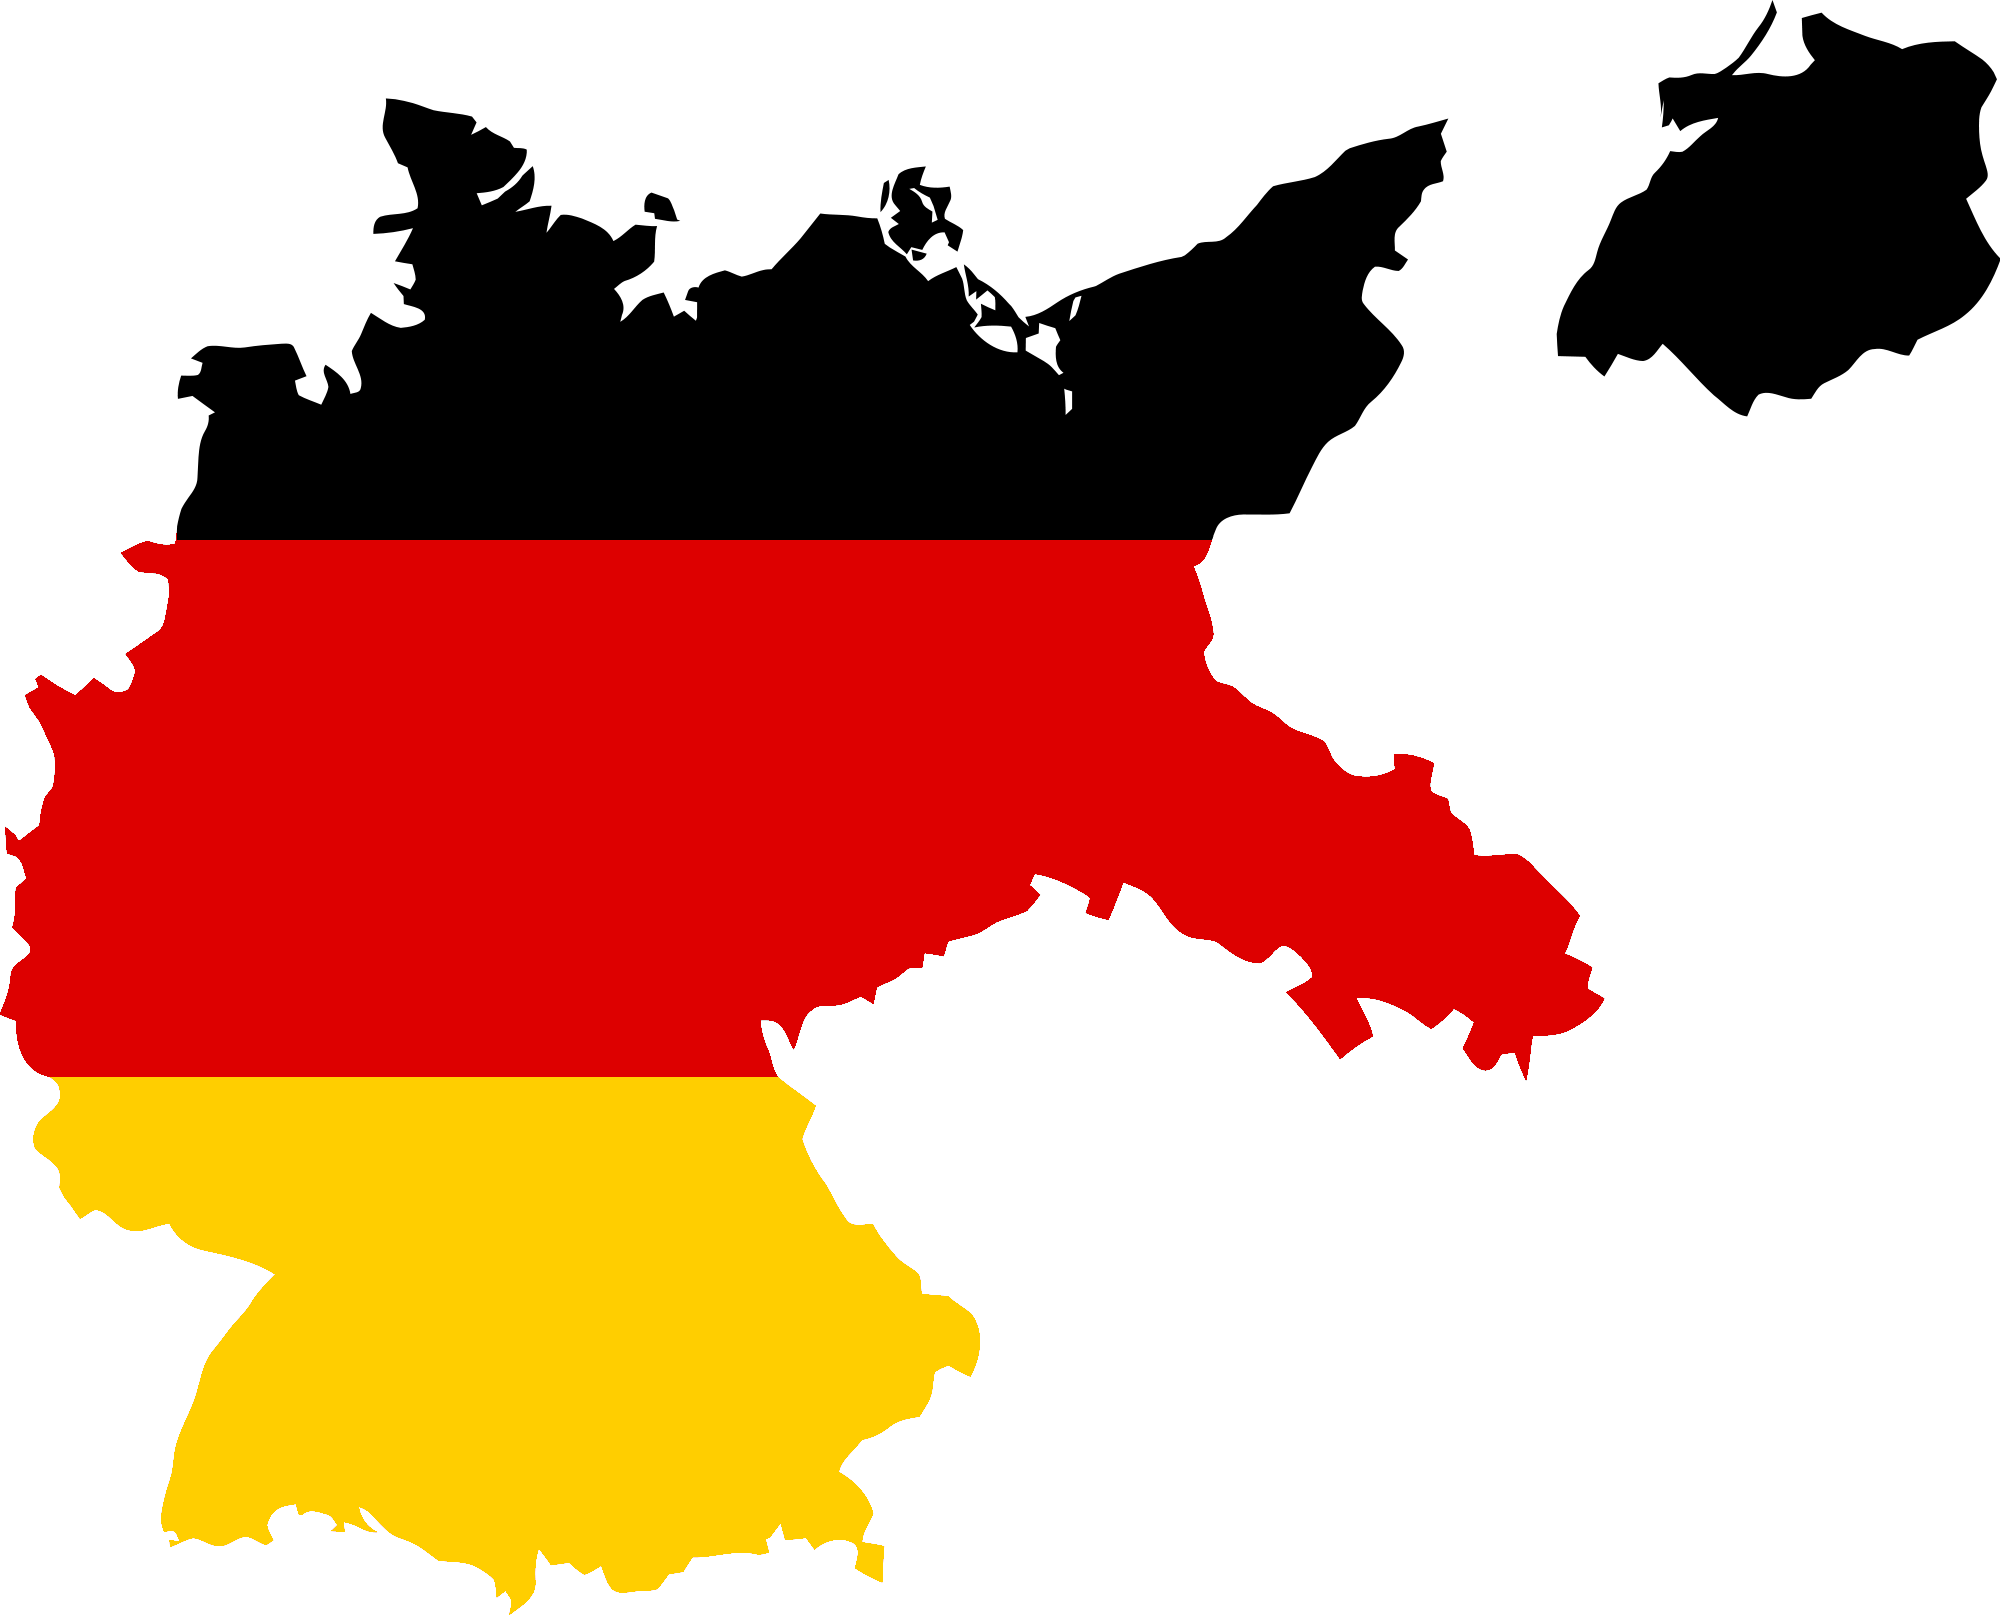 Germany clipart map 1933. File flag of weimar